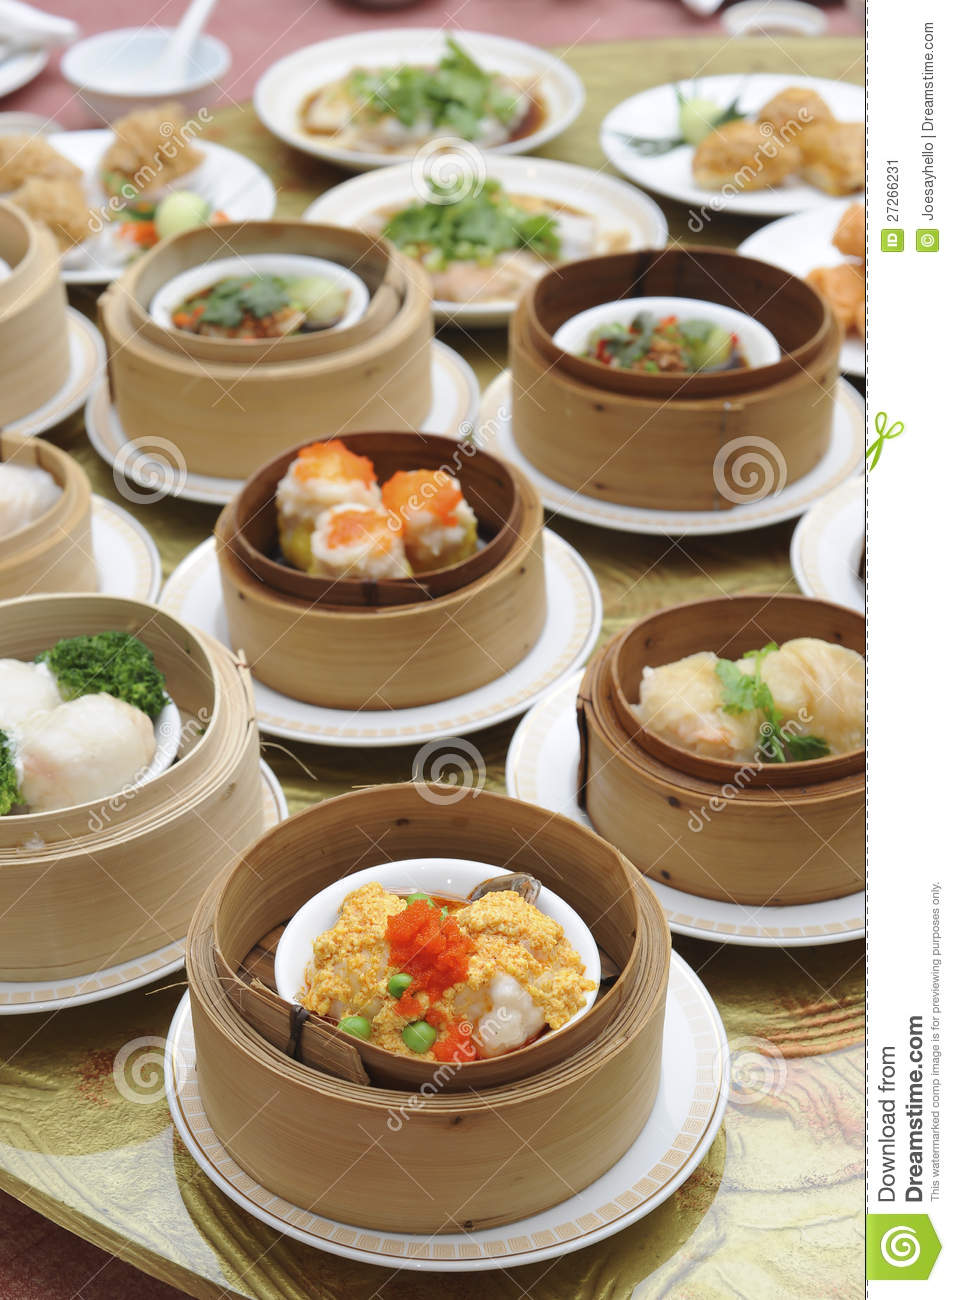 Dim sum asian cuisine menu stock image image 27266231 for Asian cuisine buffet